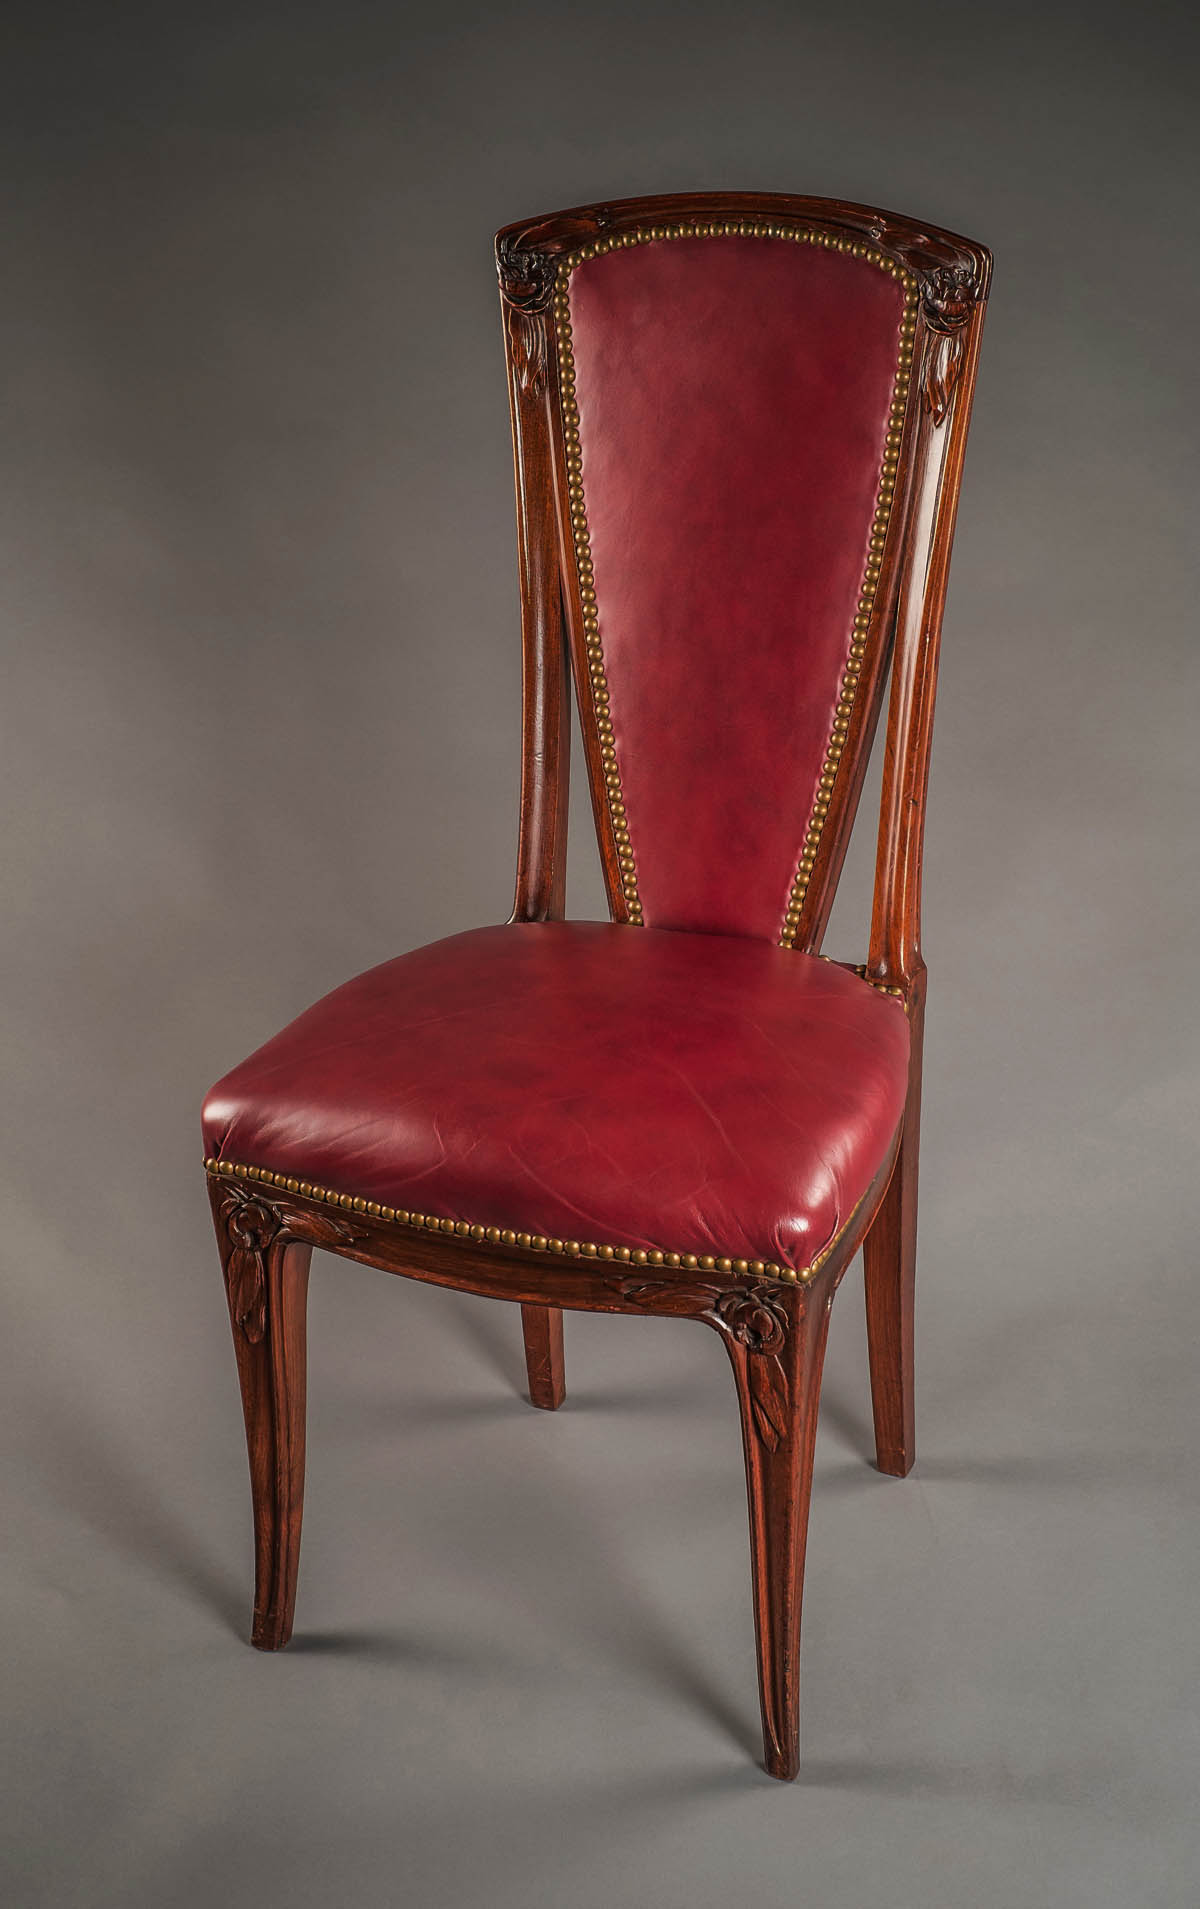 of Eight French Art Nouveau period tall back dining chairs